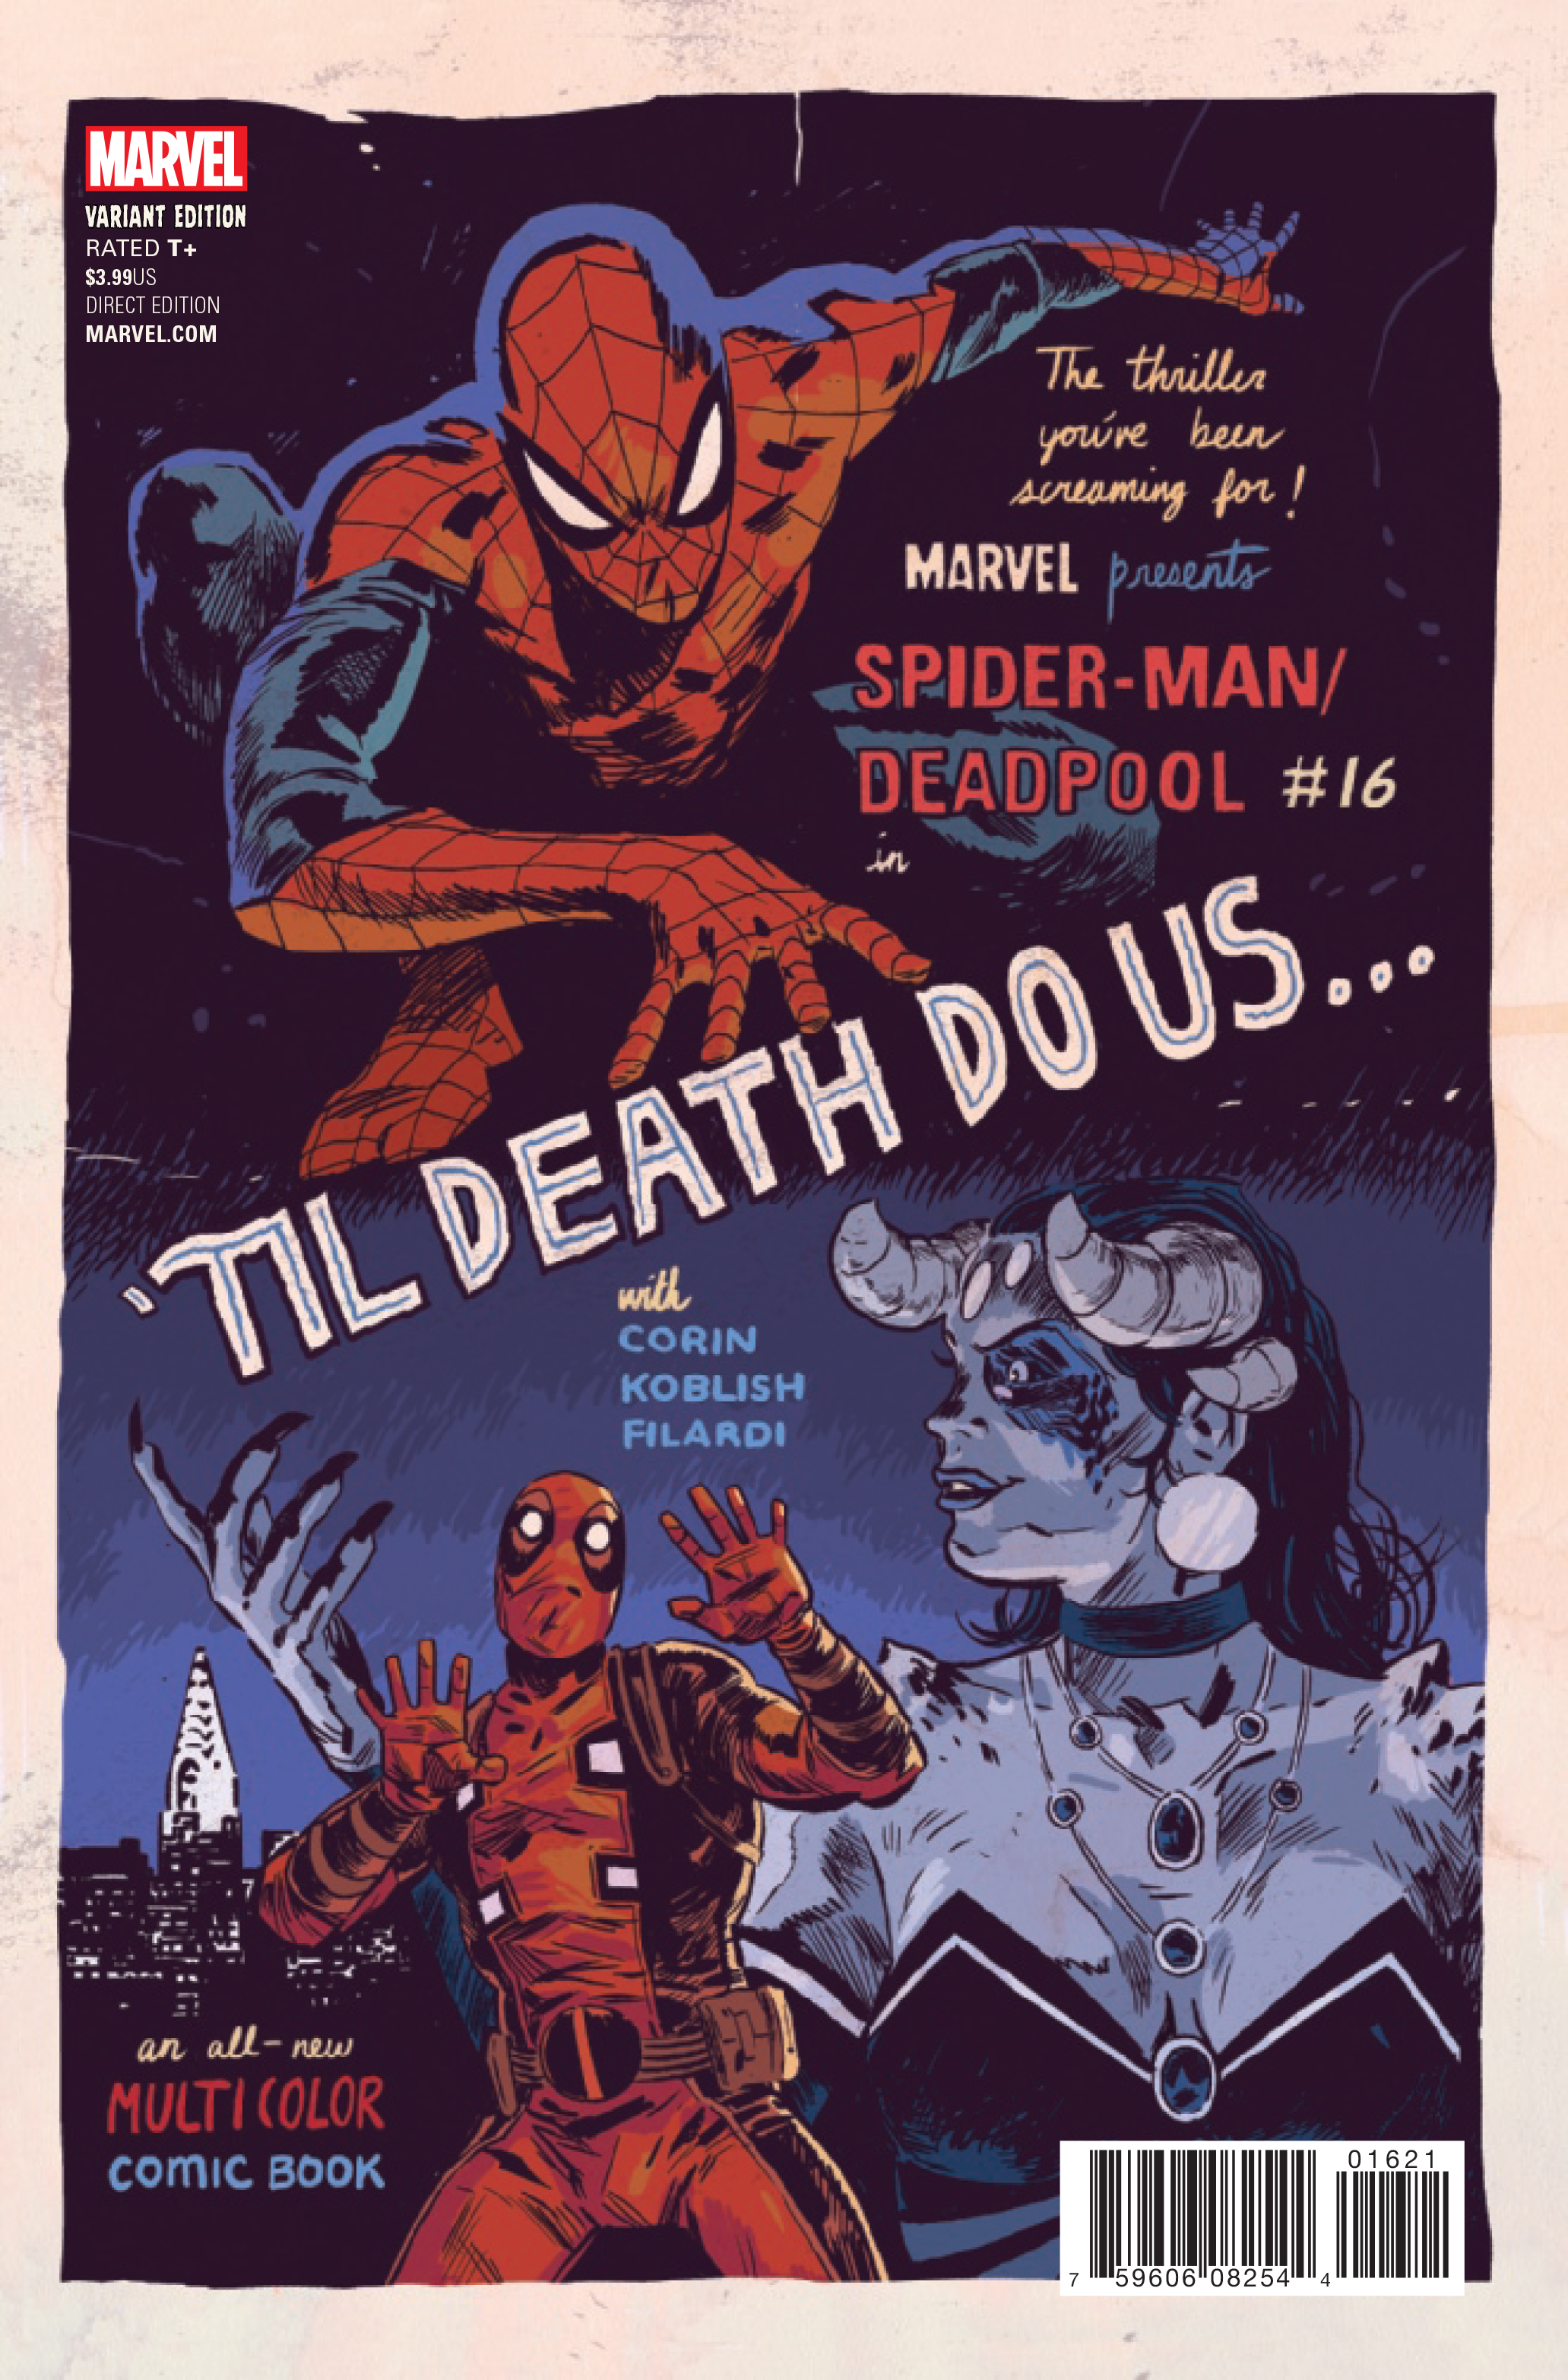 SPIDER-MAN DEADPOOL #16 WALSH POSTER VAR